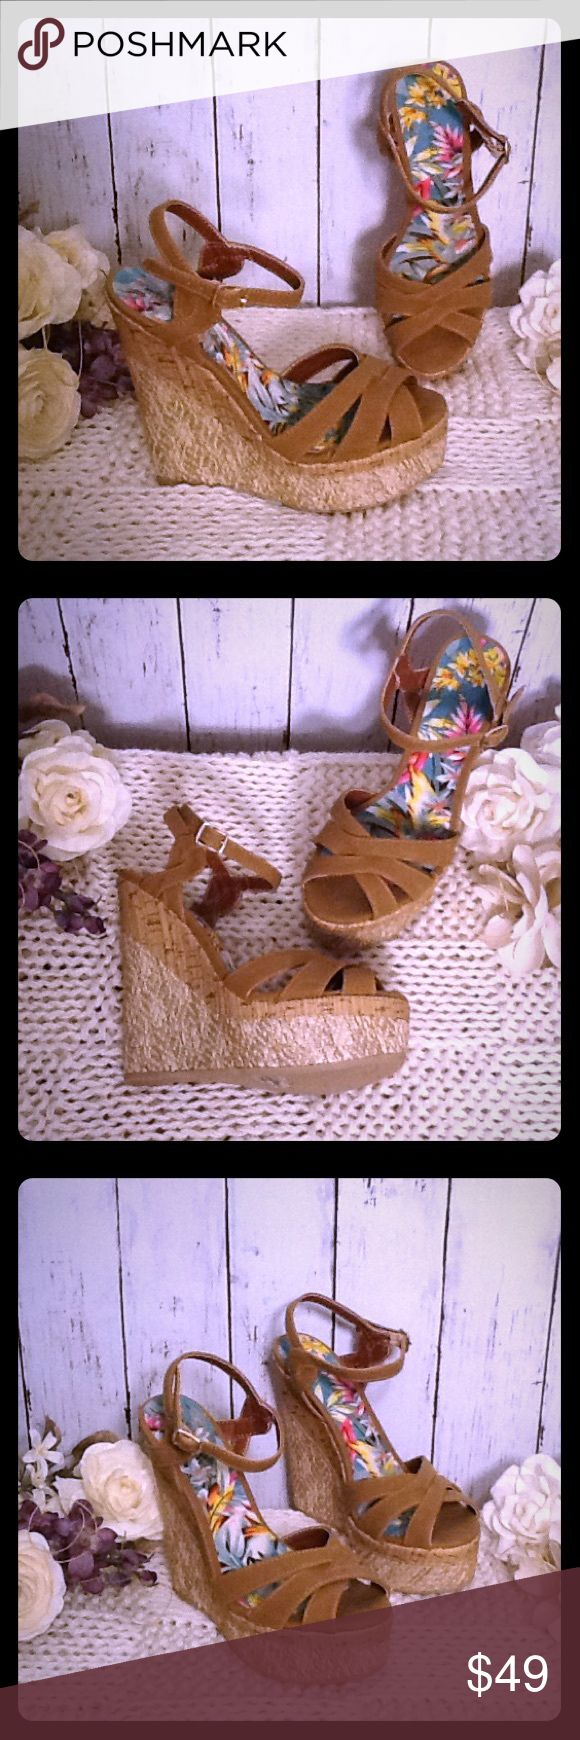 ⚡️FLASHSALE New Altar'd State Wedges Sandal Sz 8.5 Very stylish pair of Altar'd State wedges/sandals, Size 8.5, new without box, approx $79 retail, beautiful inside colorful floral pattern, classy colors of taupe, tan, khaki, cream, adjustable belt buckle ankle strap, 6 inch wedge heel, 2 inch front platform. These wedges match beautifully with the Altar'd State fuchsia pink midi dress listed in my closet under dresses. Bundle to save! Altar'd State Shoes Wedges